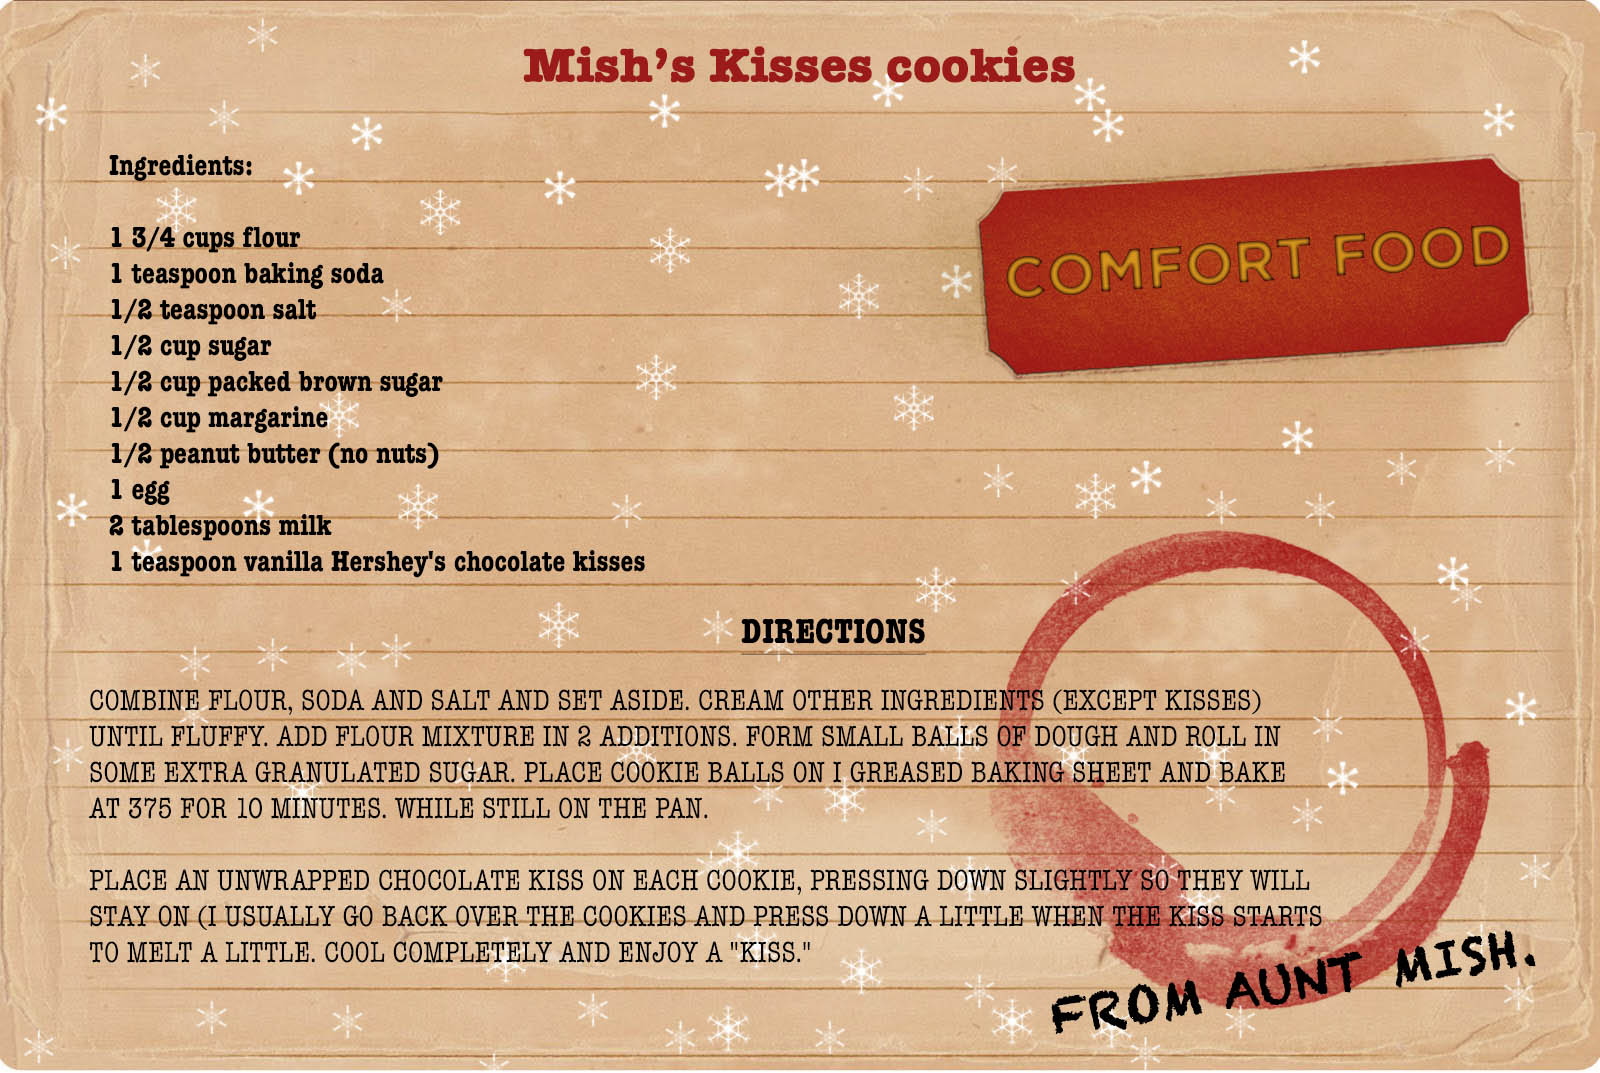 College comfort food recipe for Christmas Cookies.